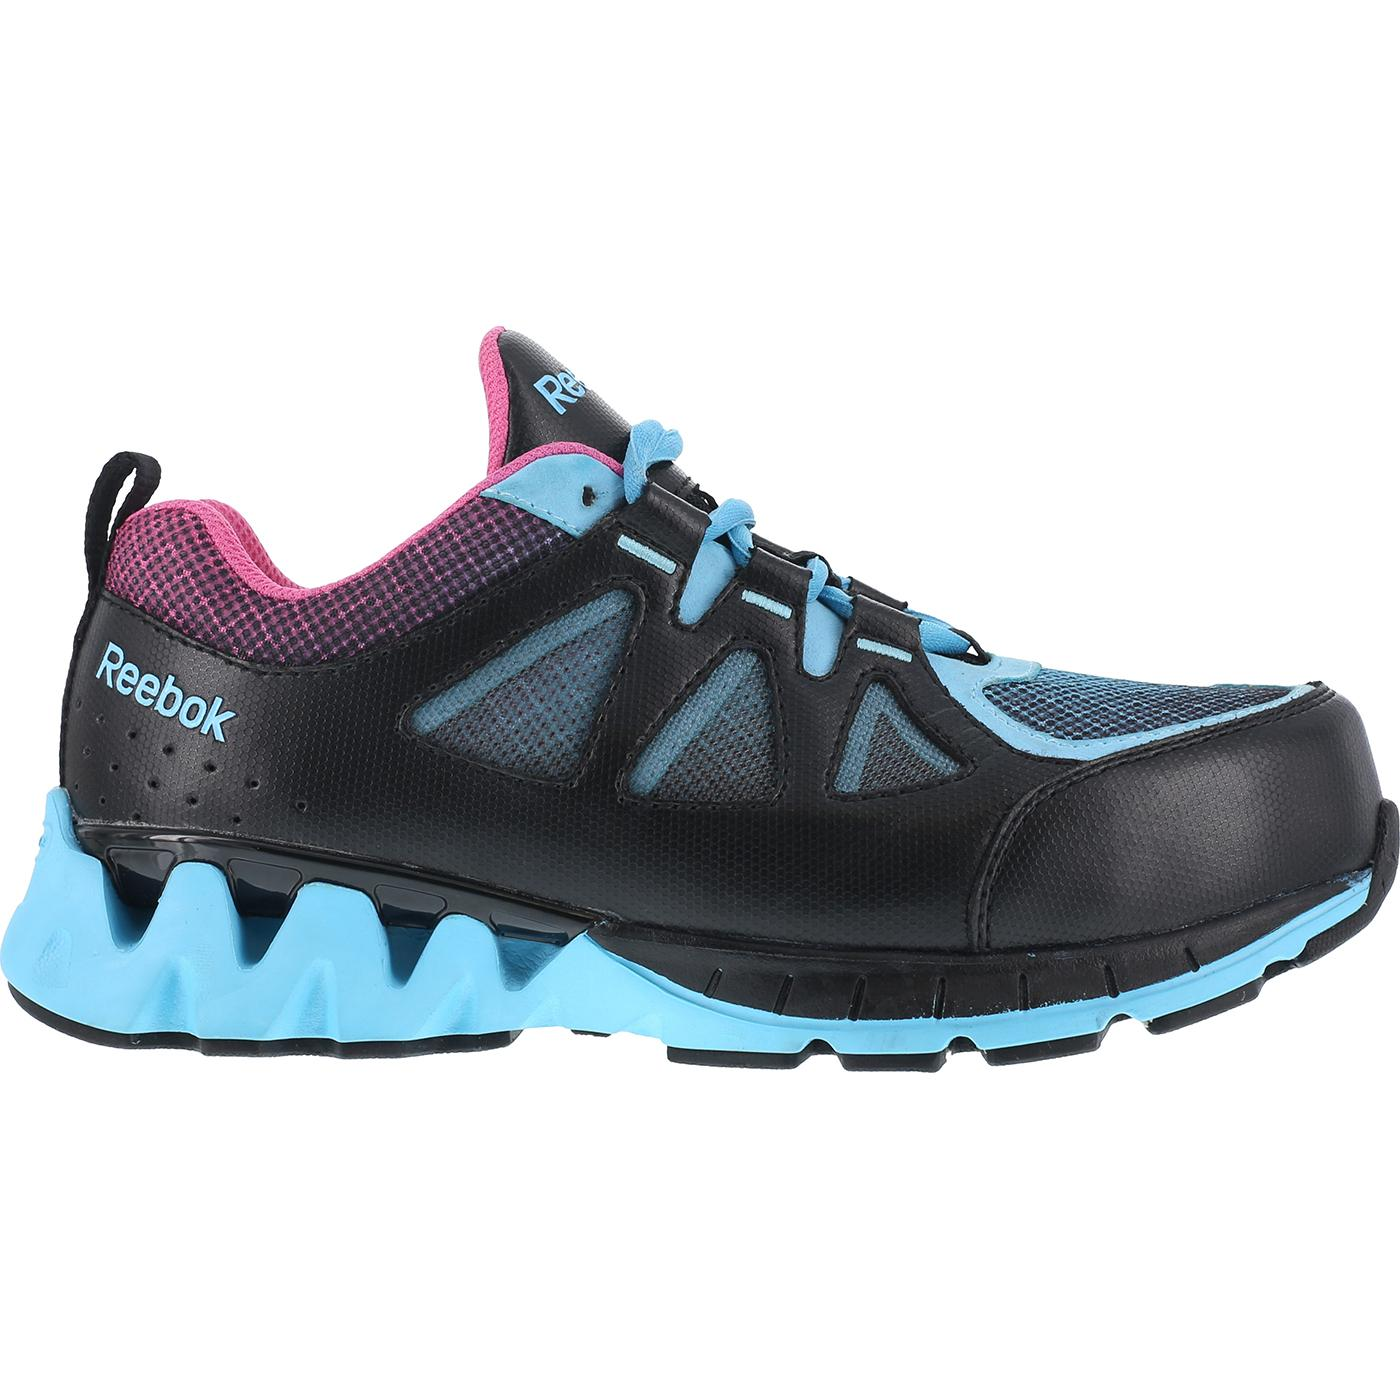 d06f73cde29128 Images. Reebok Zigkick Work Women s Composite Toe Static-Dissipative Work  Athletic Oxford ...